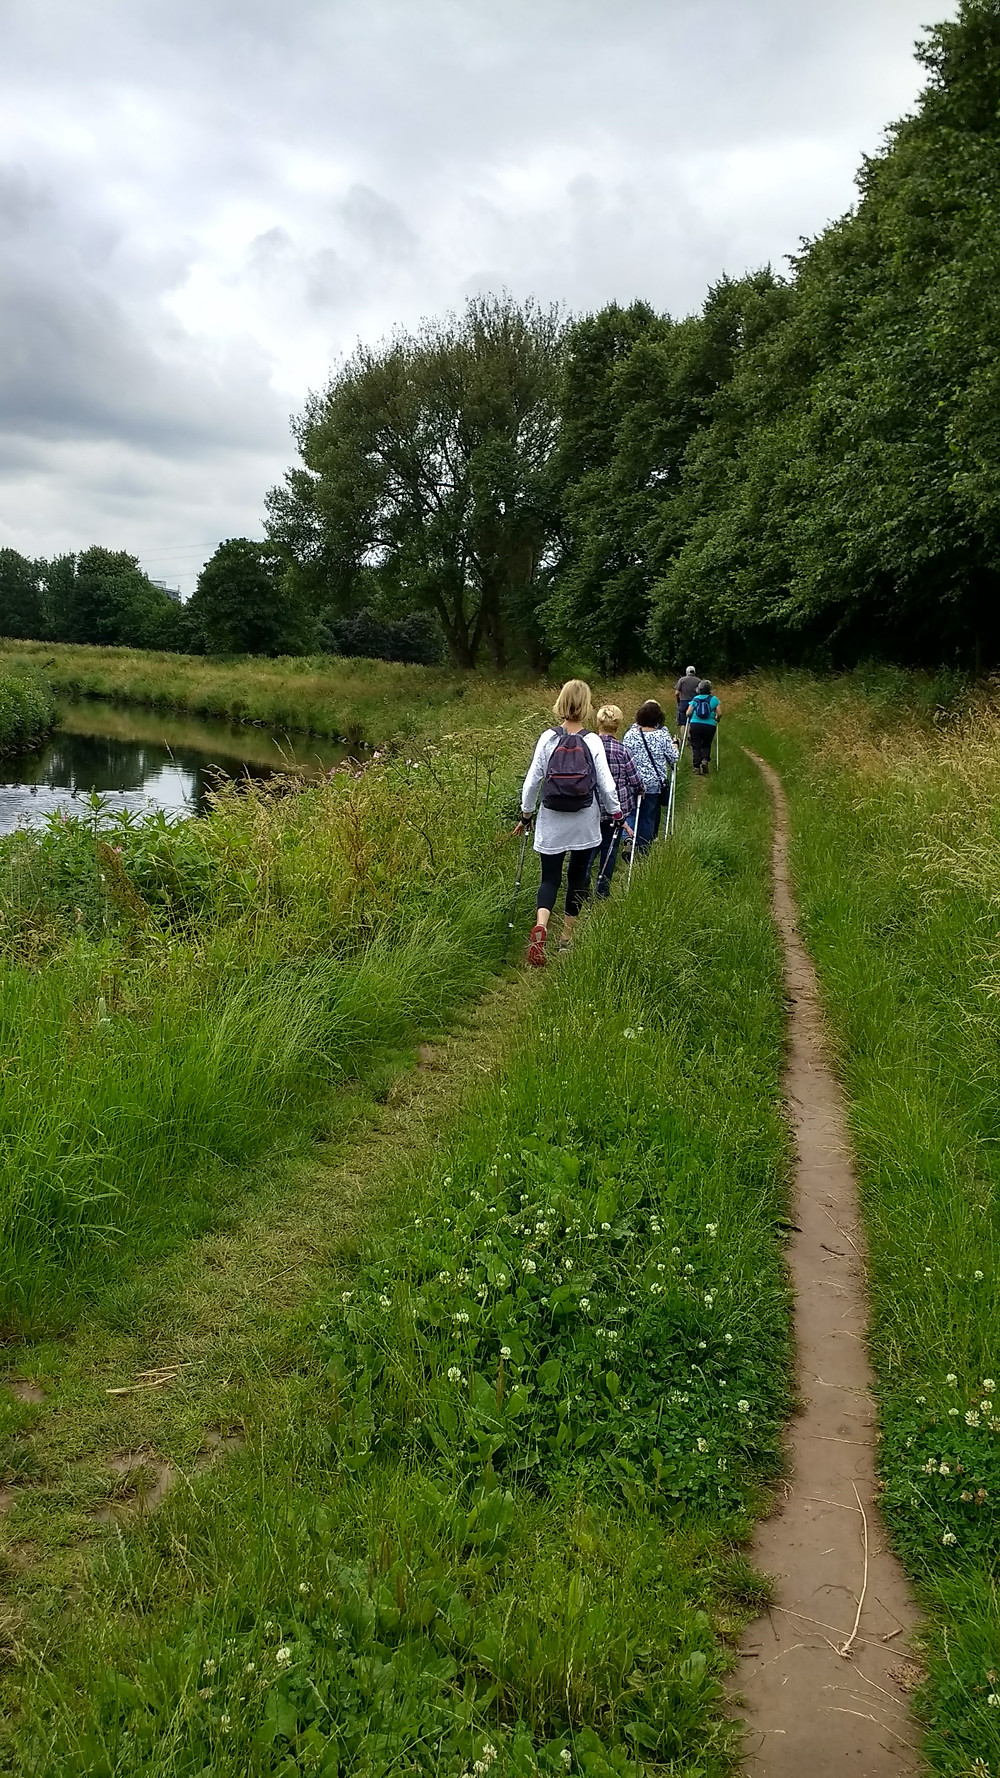 Nordic Walking in Didsbury, along the River Mersey